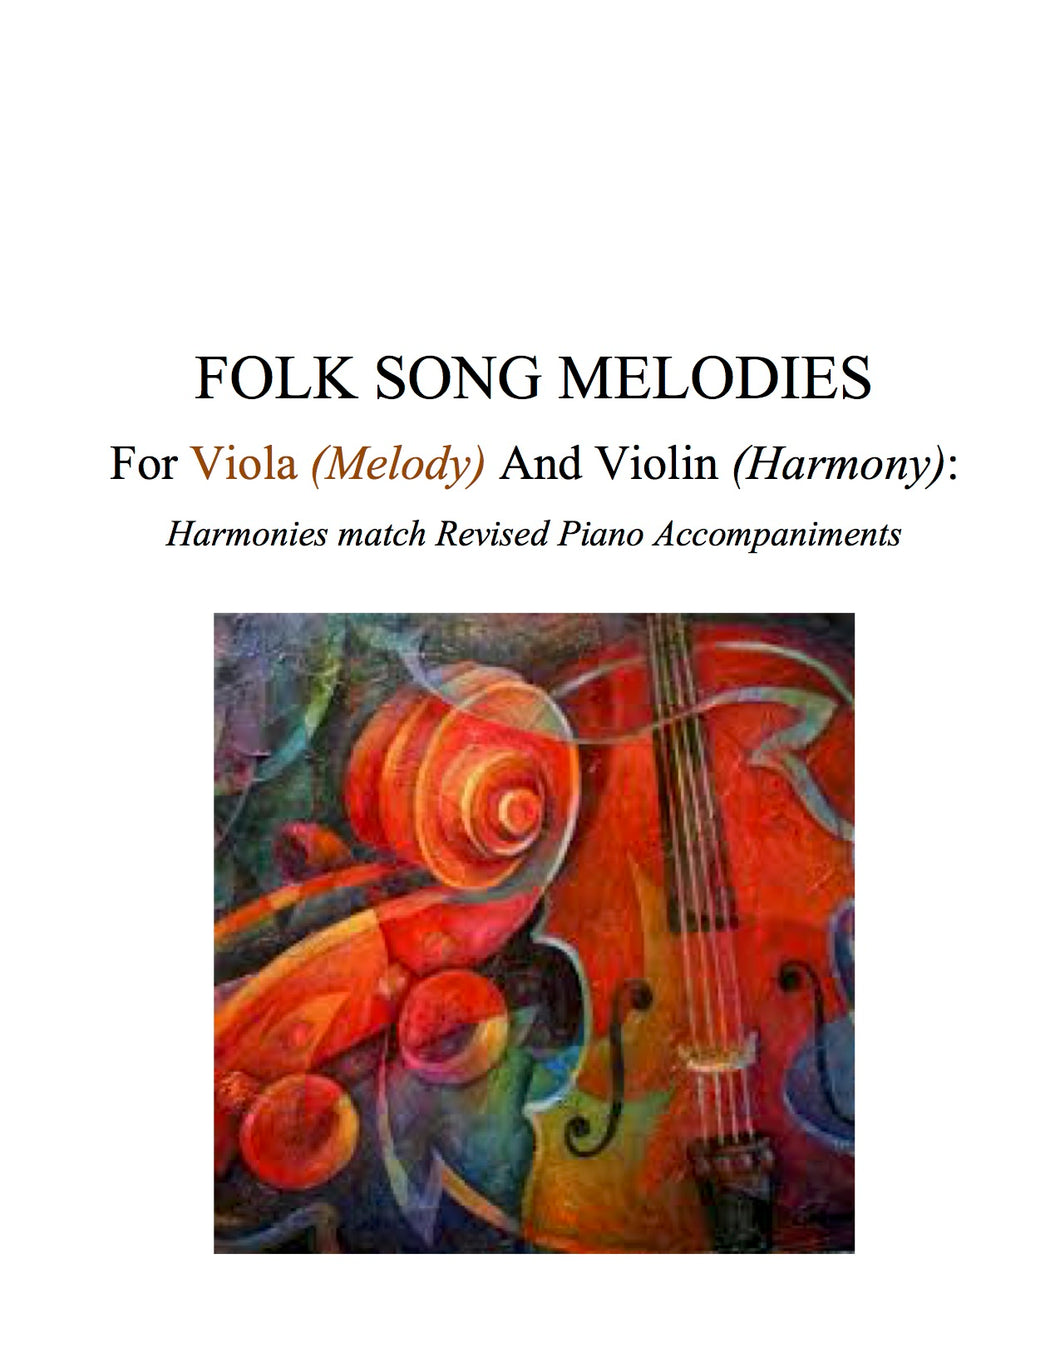 015 - Folk Song Melodies For Viola (Melody) and Violin (Harmony) Twinkle - Etude